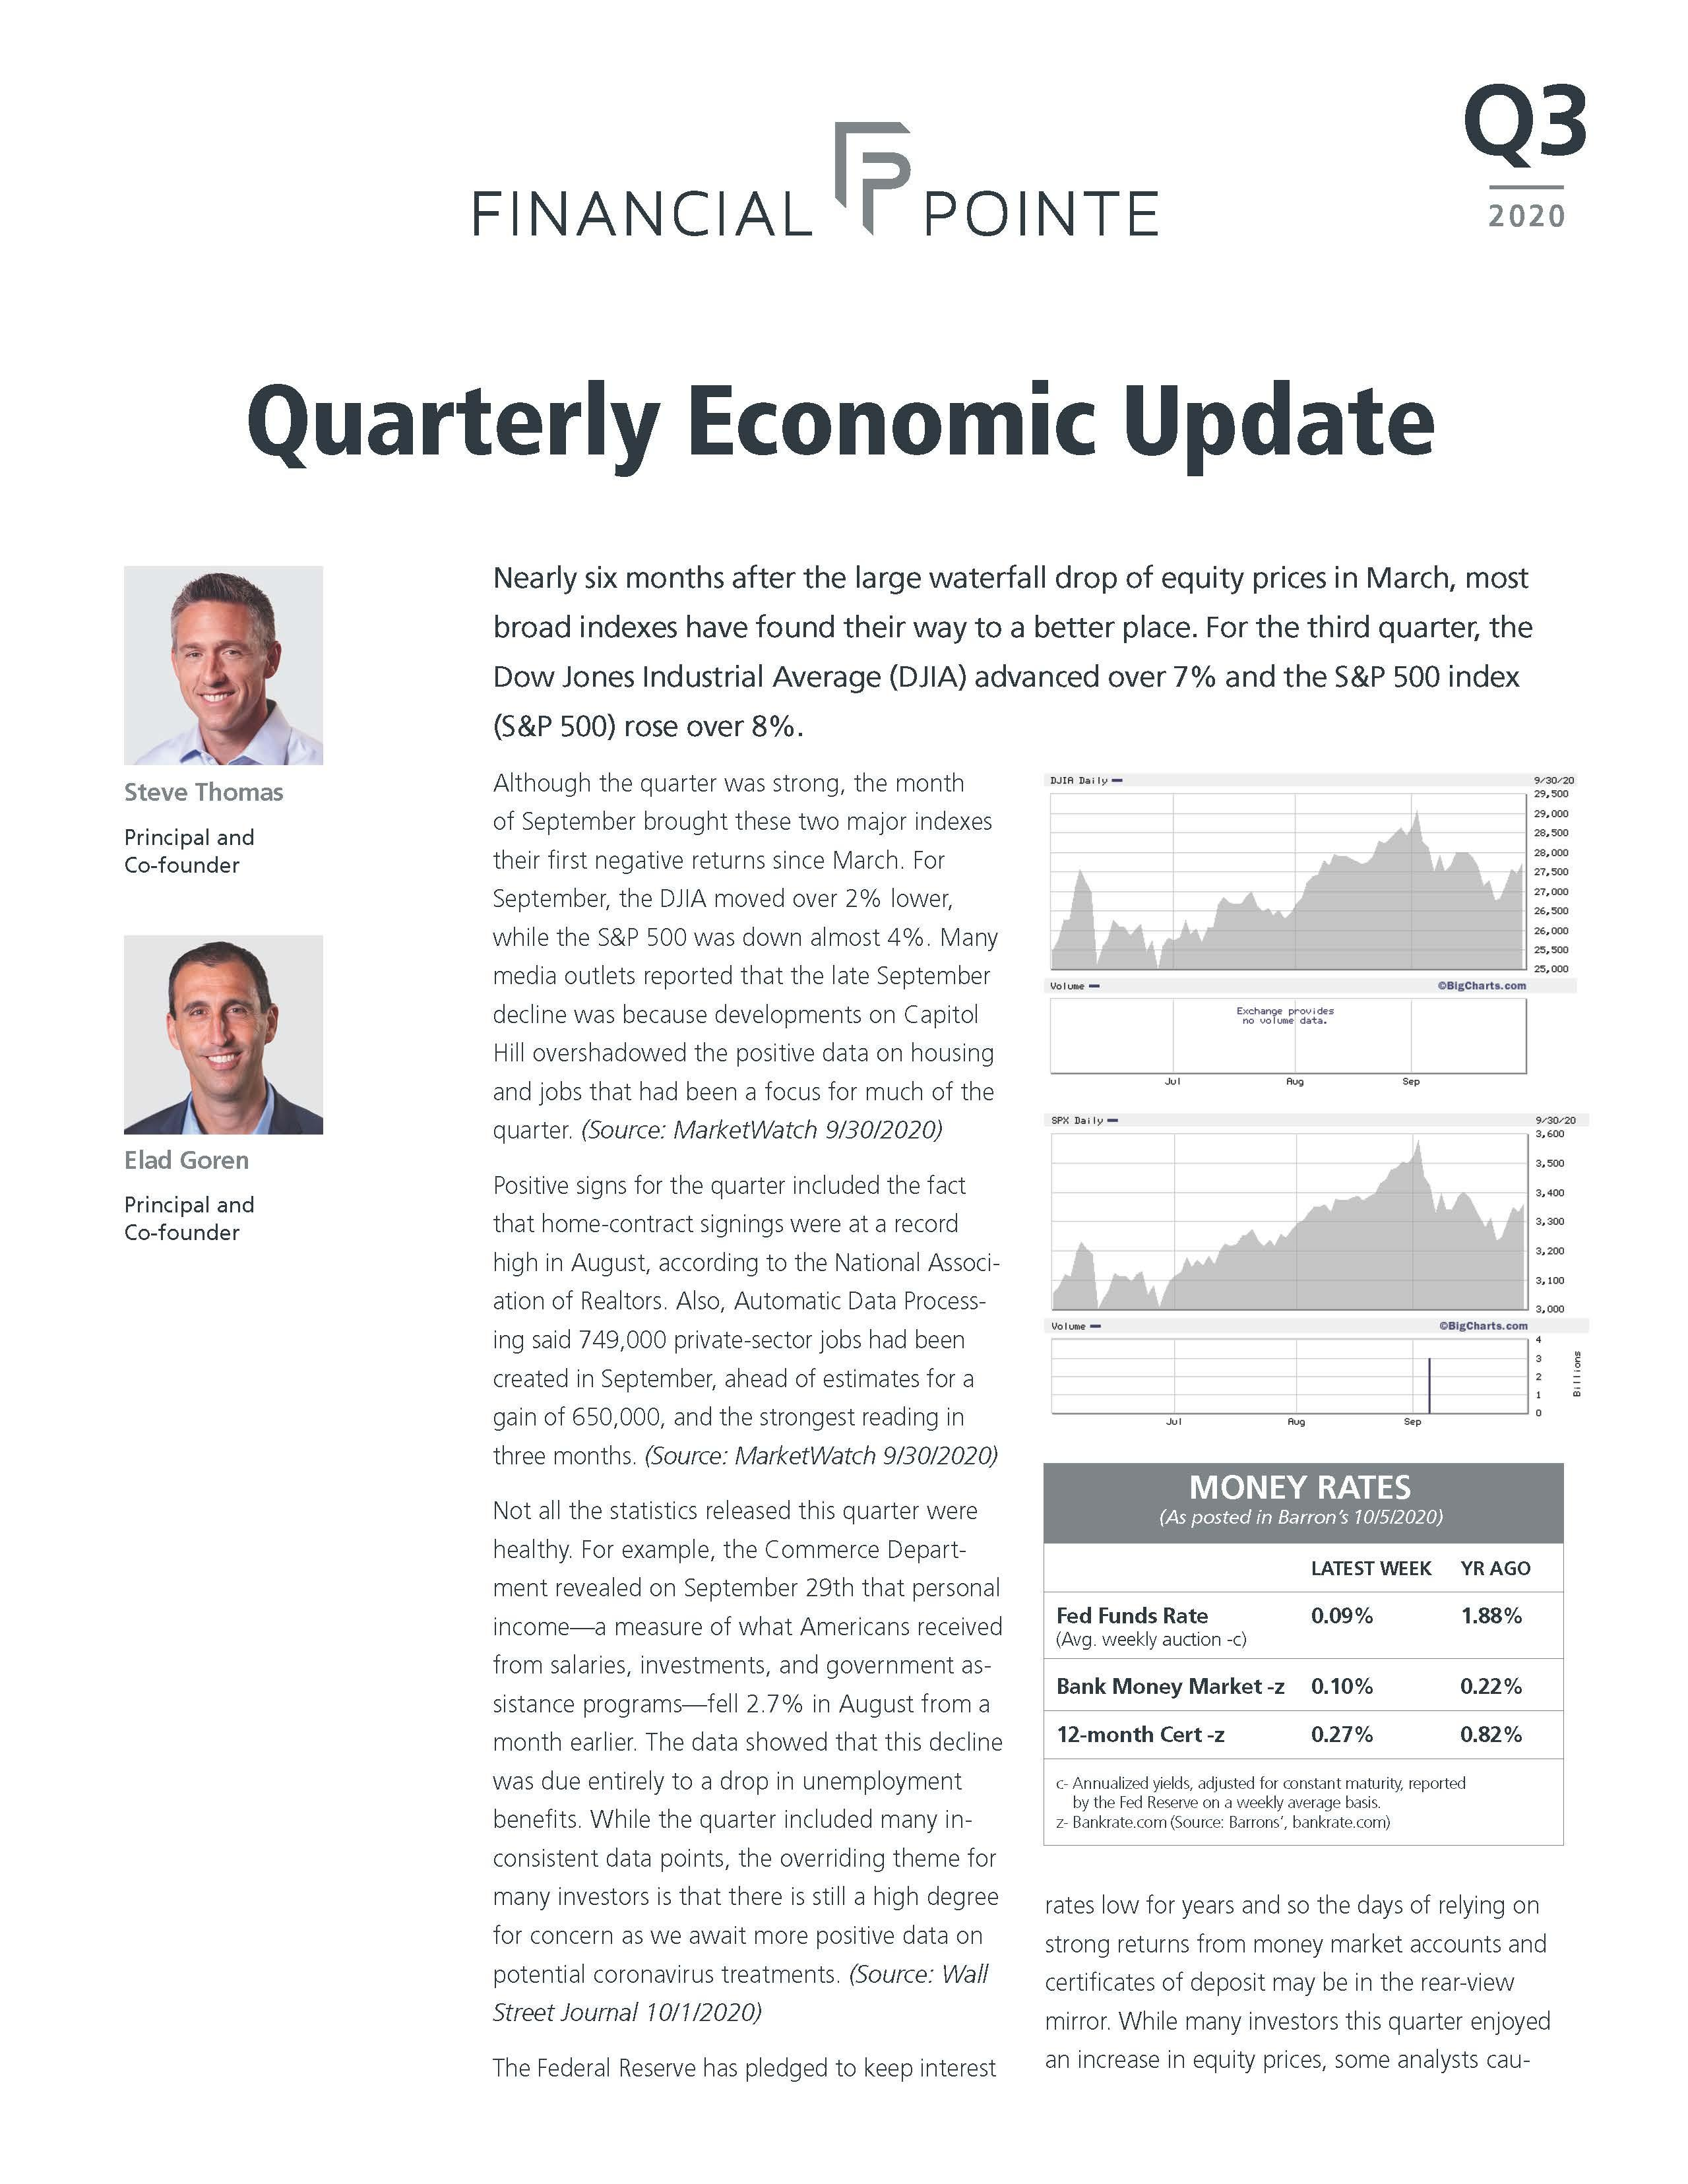 Quarterly Economic Update - Q3 2020 Thumbnail